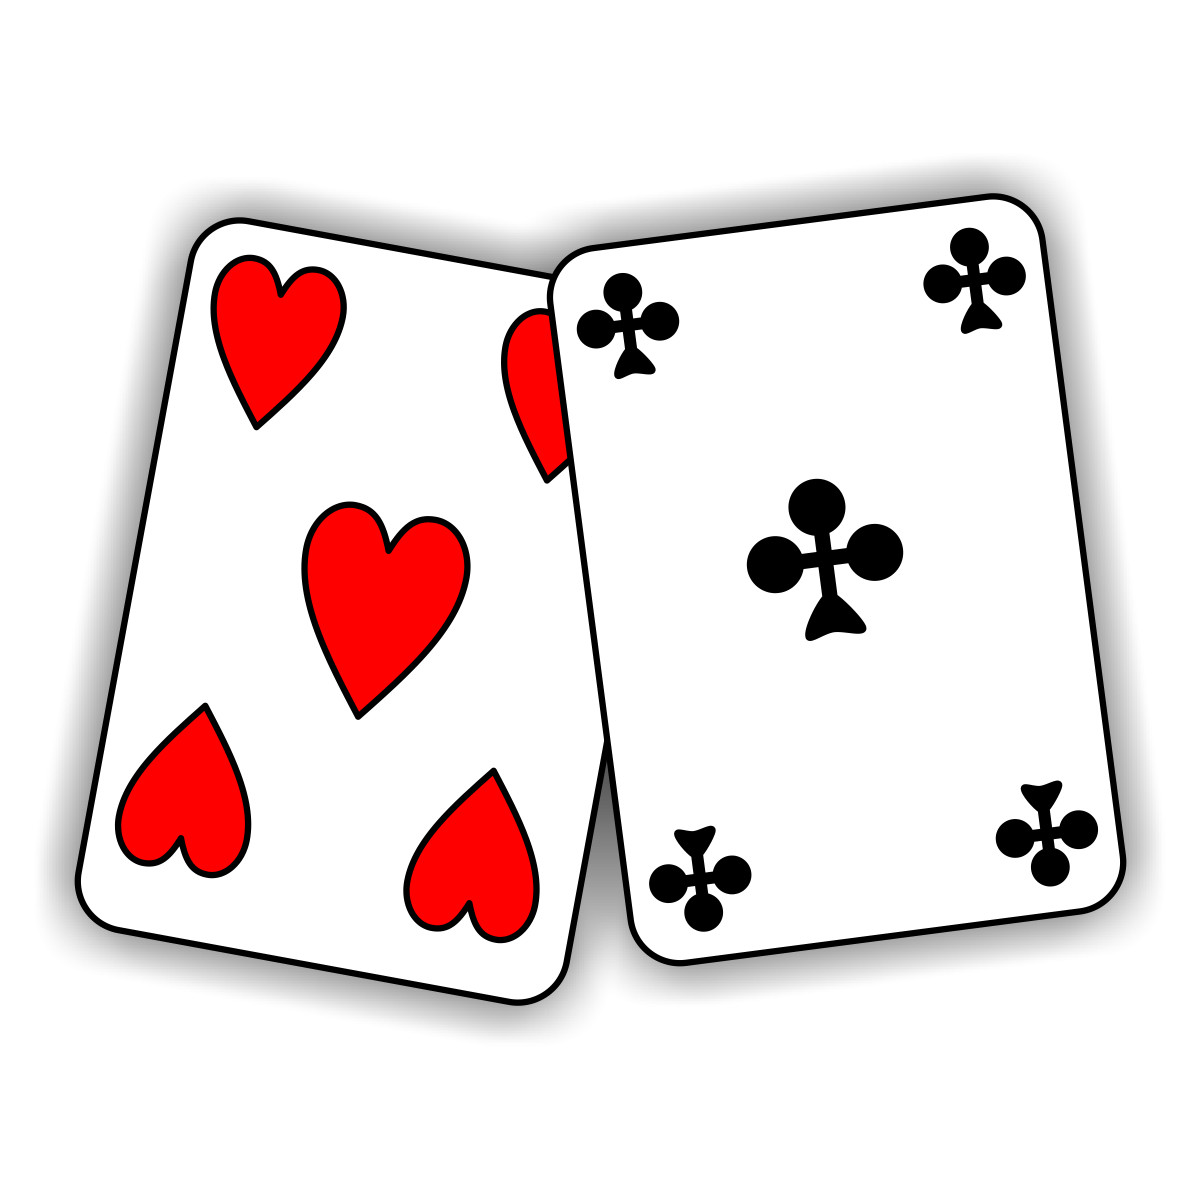 Playing card images clipart clip transparent Free Play Cards Cliparts, Download Free Clip Art, Free Clip Art on ... clip transparent